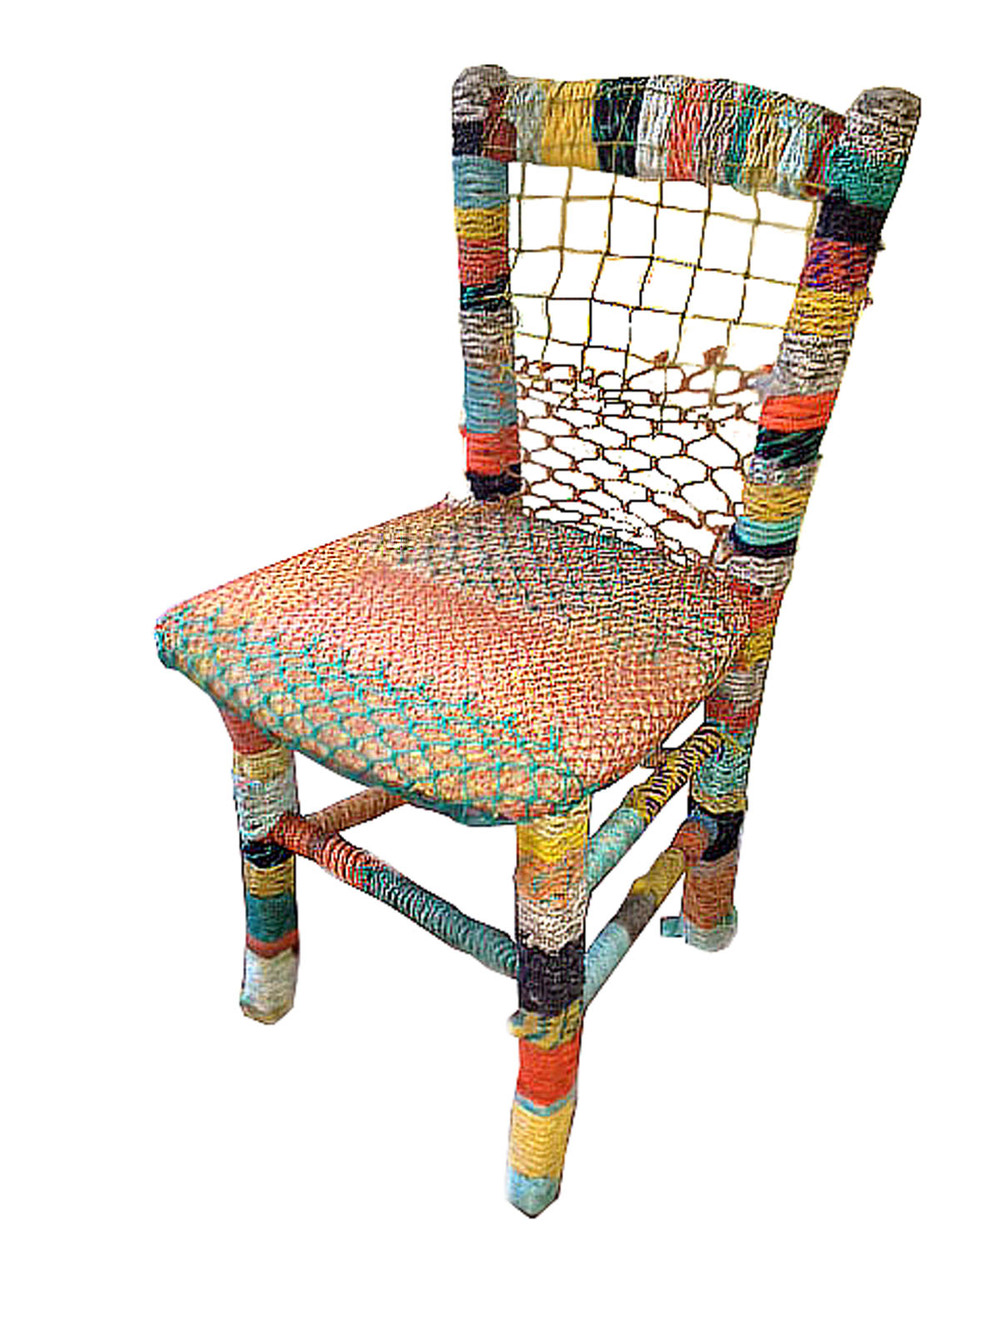 "Warp Chair    found warp line, fishing net, bait trap, dining chair  36"" x 22"" x 18""  2012  (sold)"